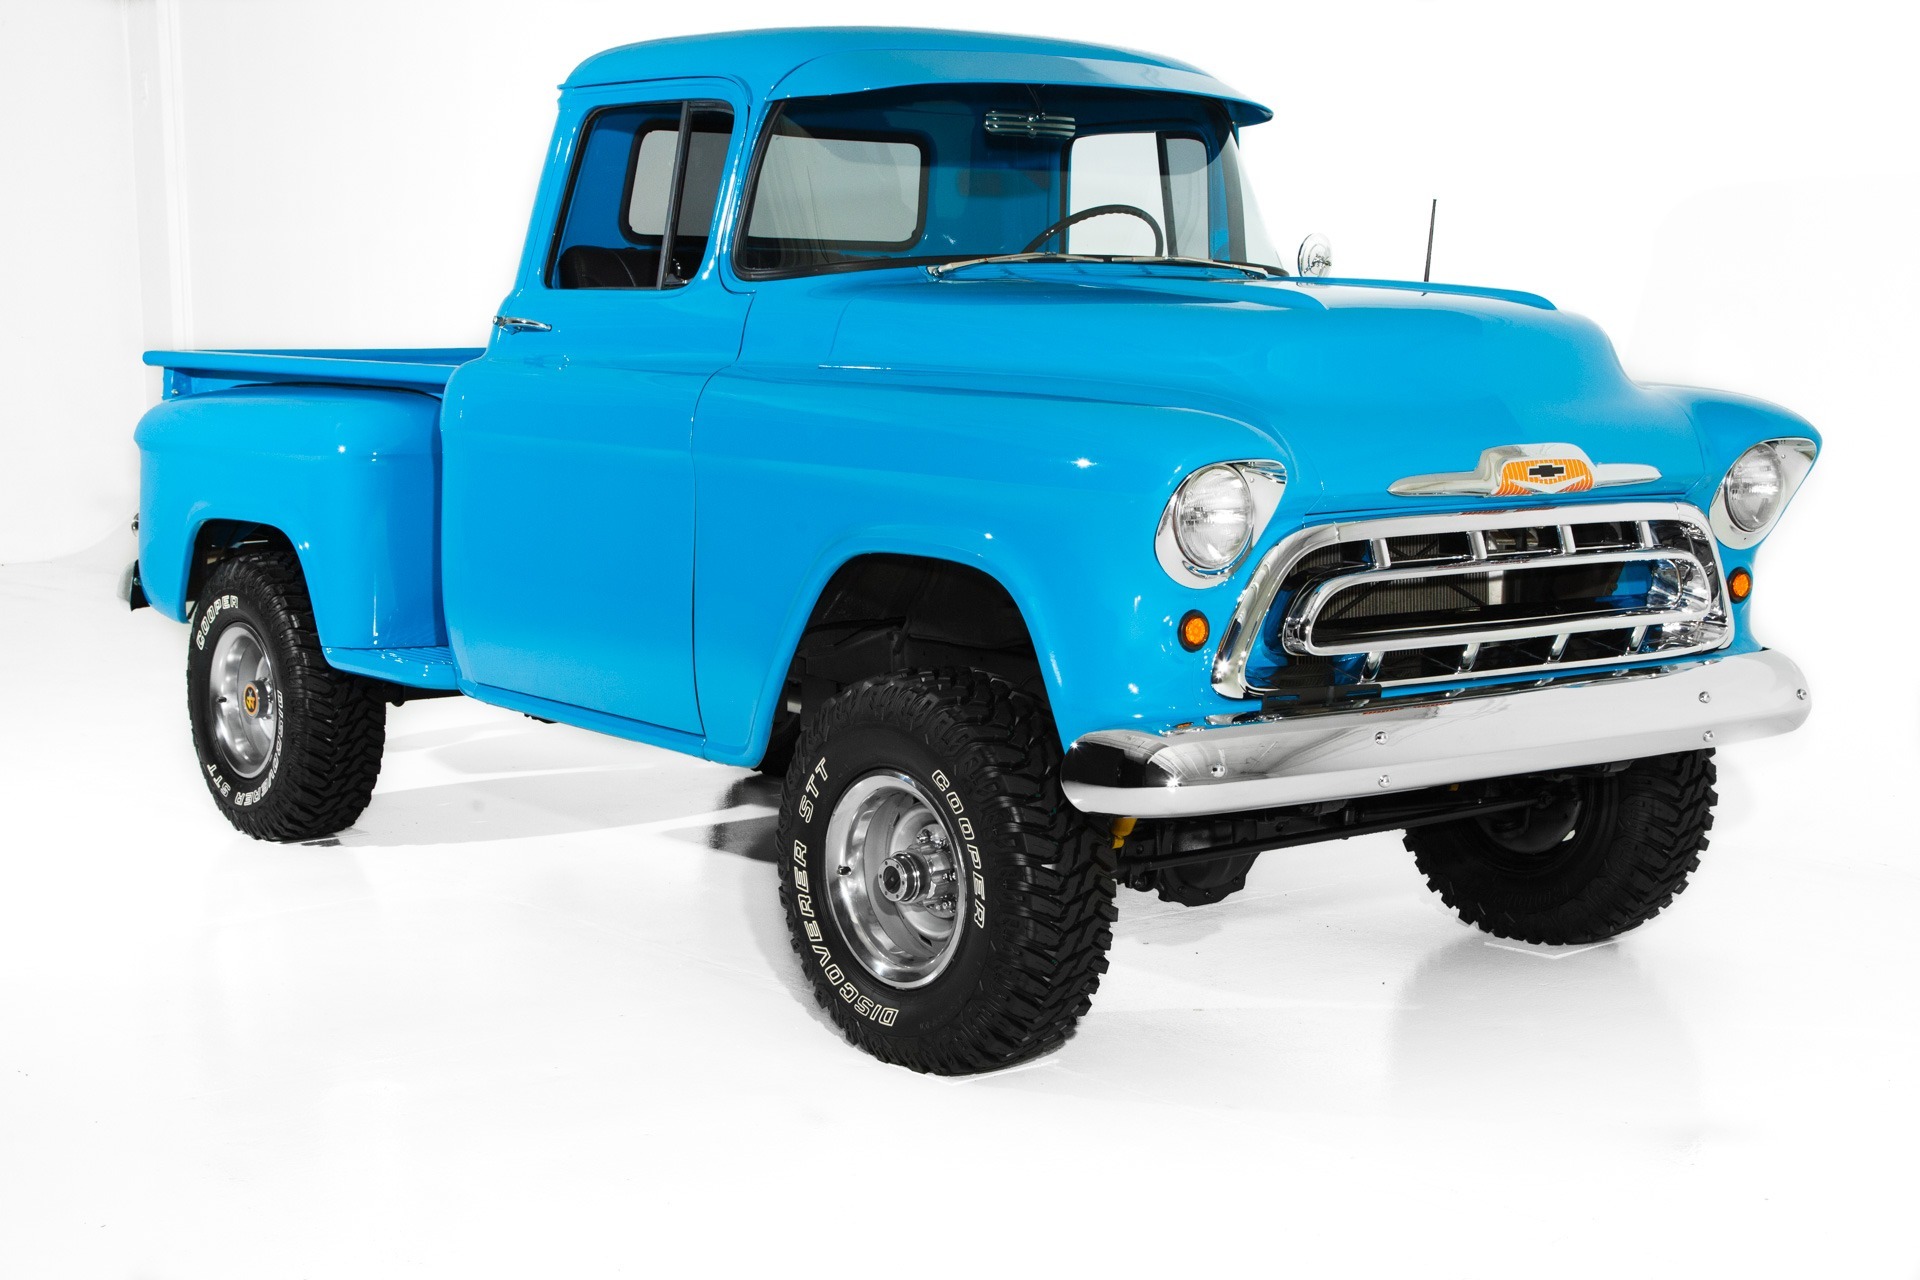 1957 Chevrolet Pickup 3100 4x4 Auto Great Truck